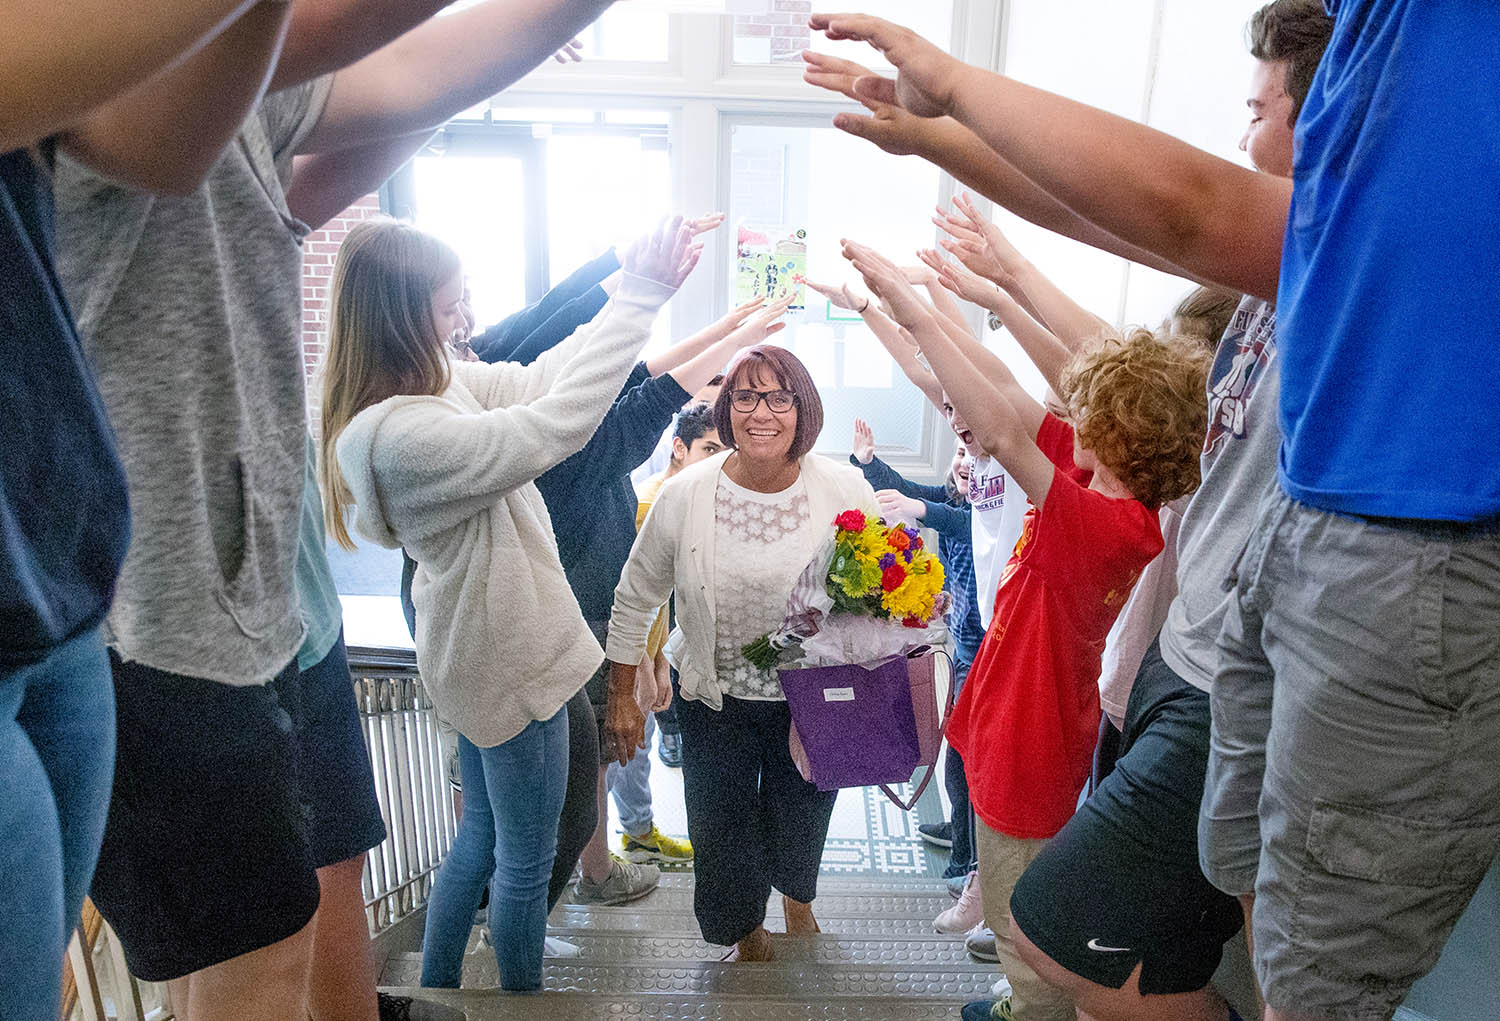 Christie Jones, an eighth grade writing, literature, and AVID teacher at Lincoln Magnet School, is greeted by students as she returns to the building after being named the 2019 Horace Mann Educator of the Year during a ceremony Tuesday, May 7, 2019. [Ted Schurter/The State Journal-Register]